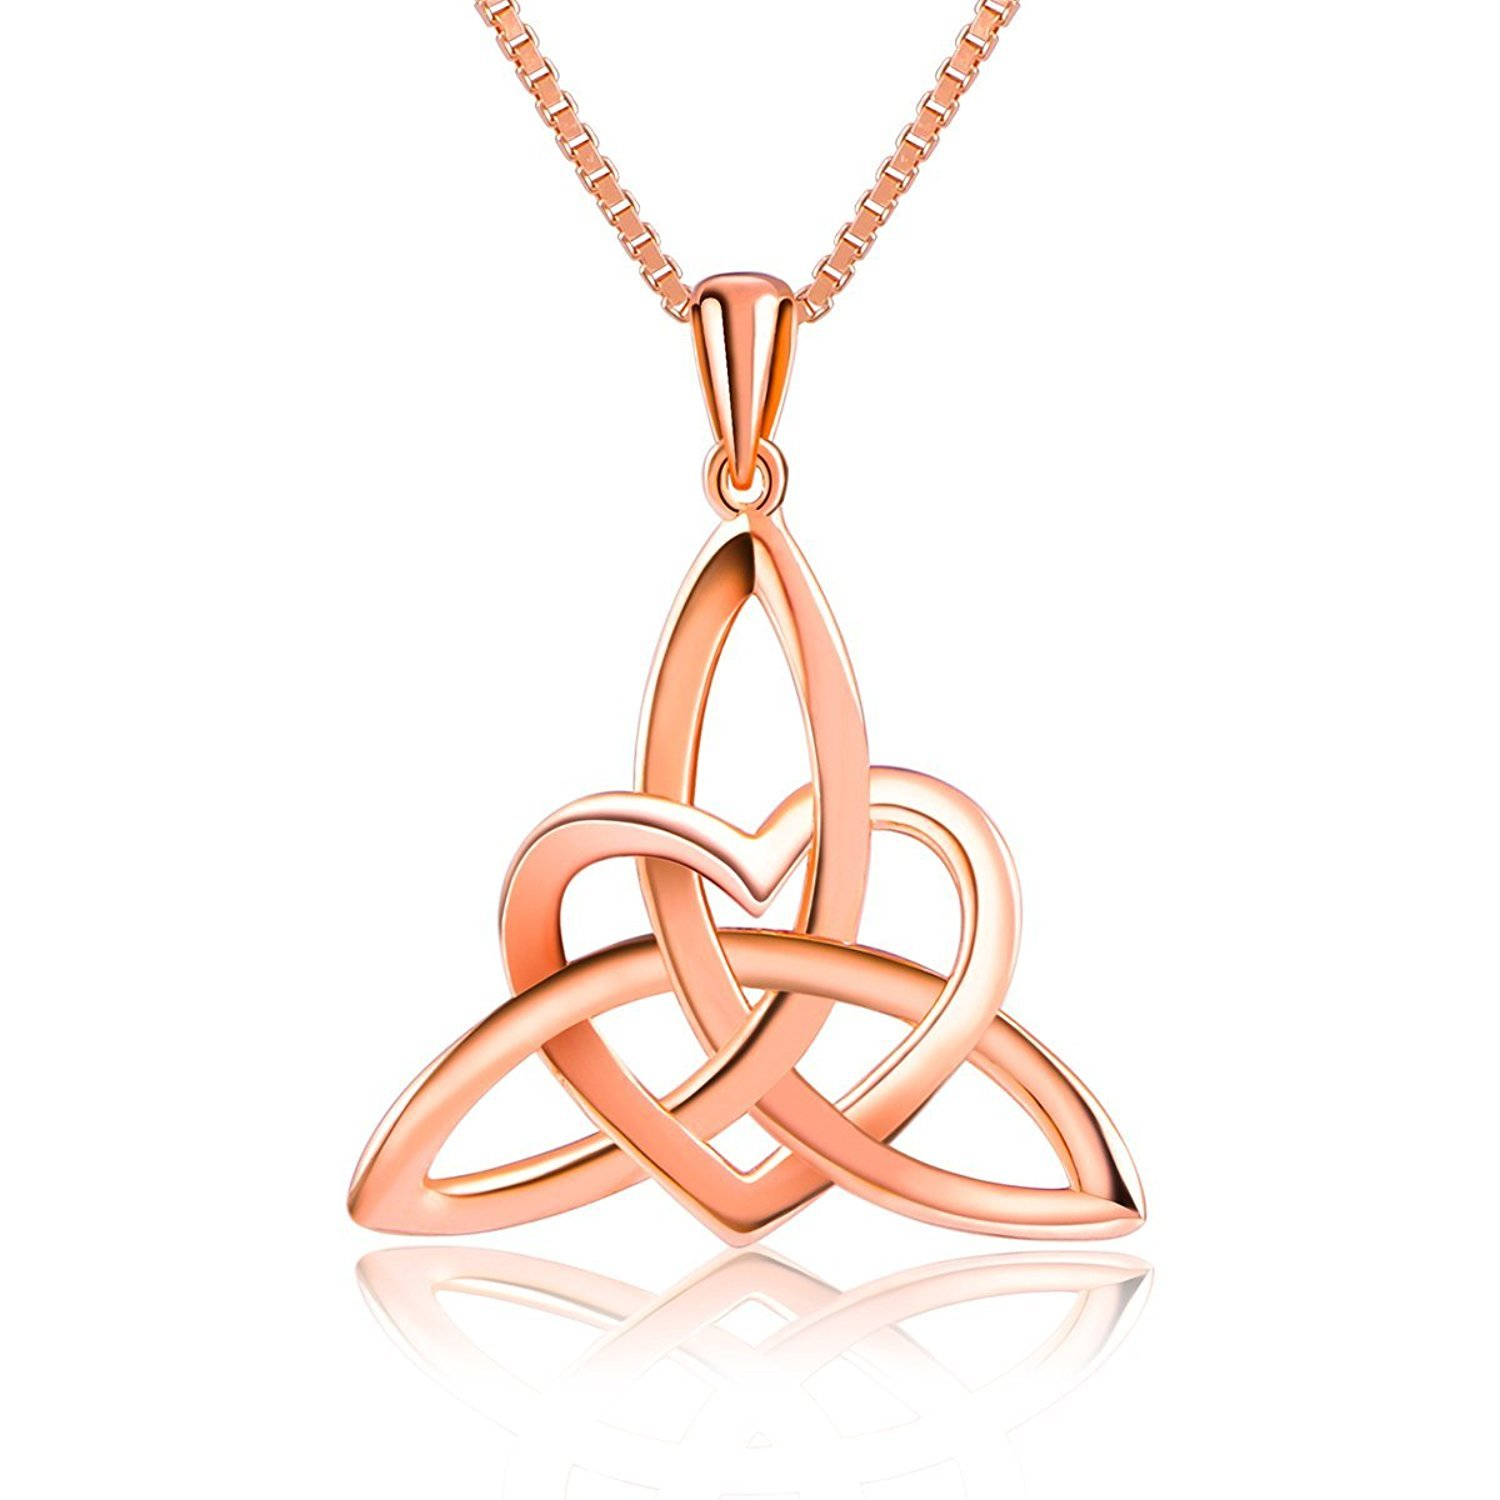 BGTY S925 Sterling Silver Celtic Knot Triangle Vintage Love Heart Pendant Necklace BGTY Jewelry